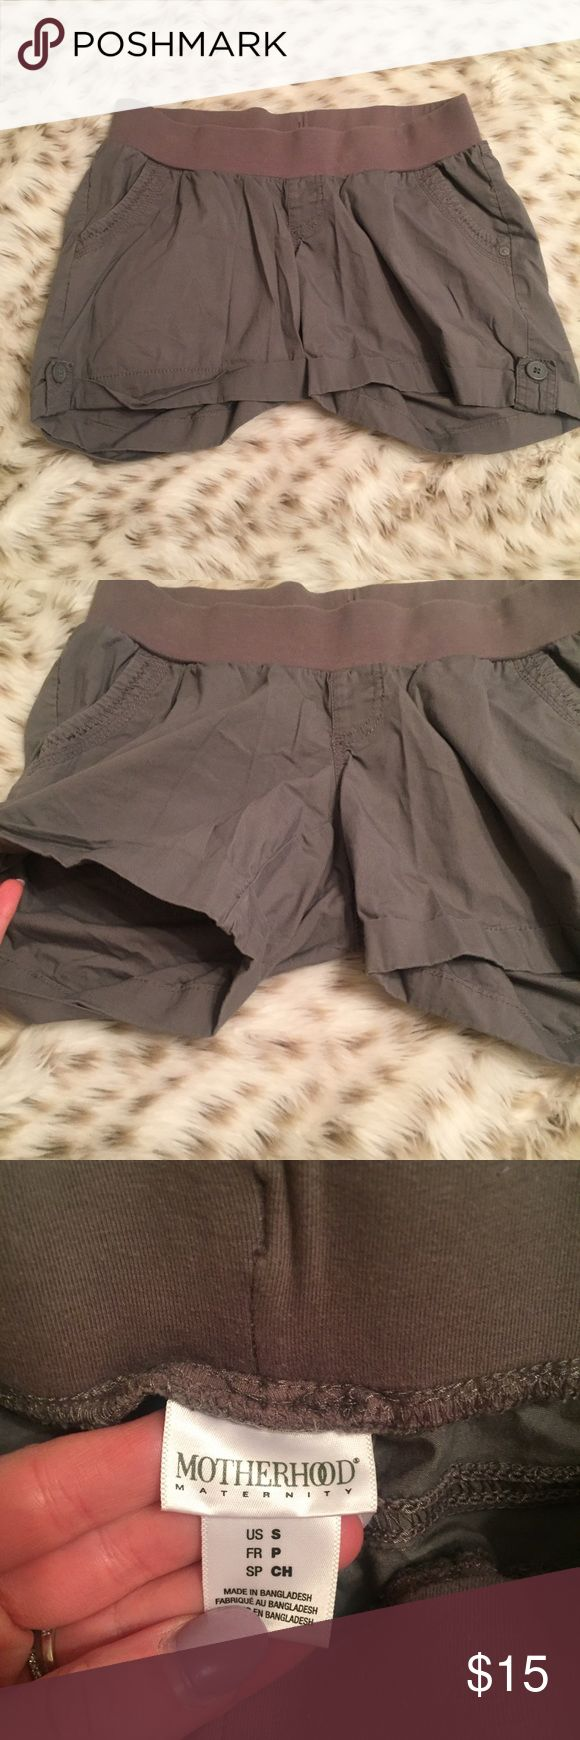 Motherhood Maternity Gray Shorts Motherhood maternity gray shorts! Size small! Has small stretchy band at the waist! Super cute and comfy! In excellent used condition! Motherhood Maternity Shorts